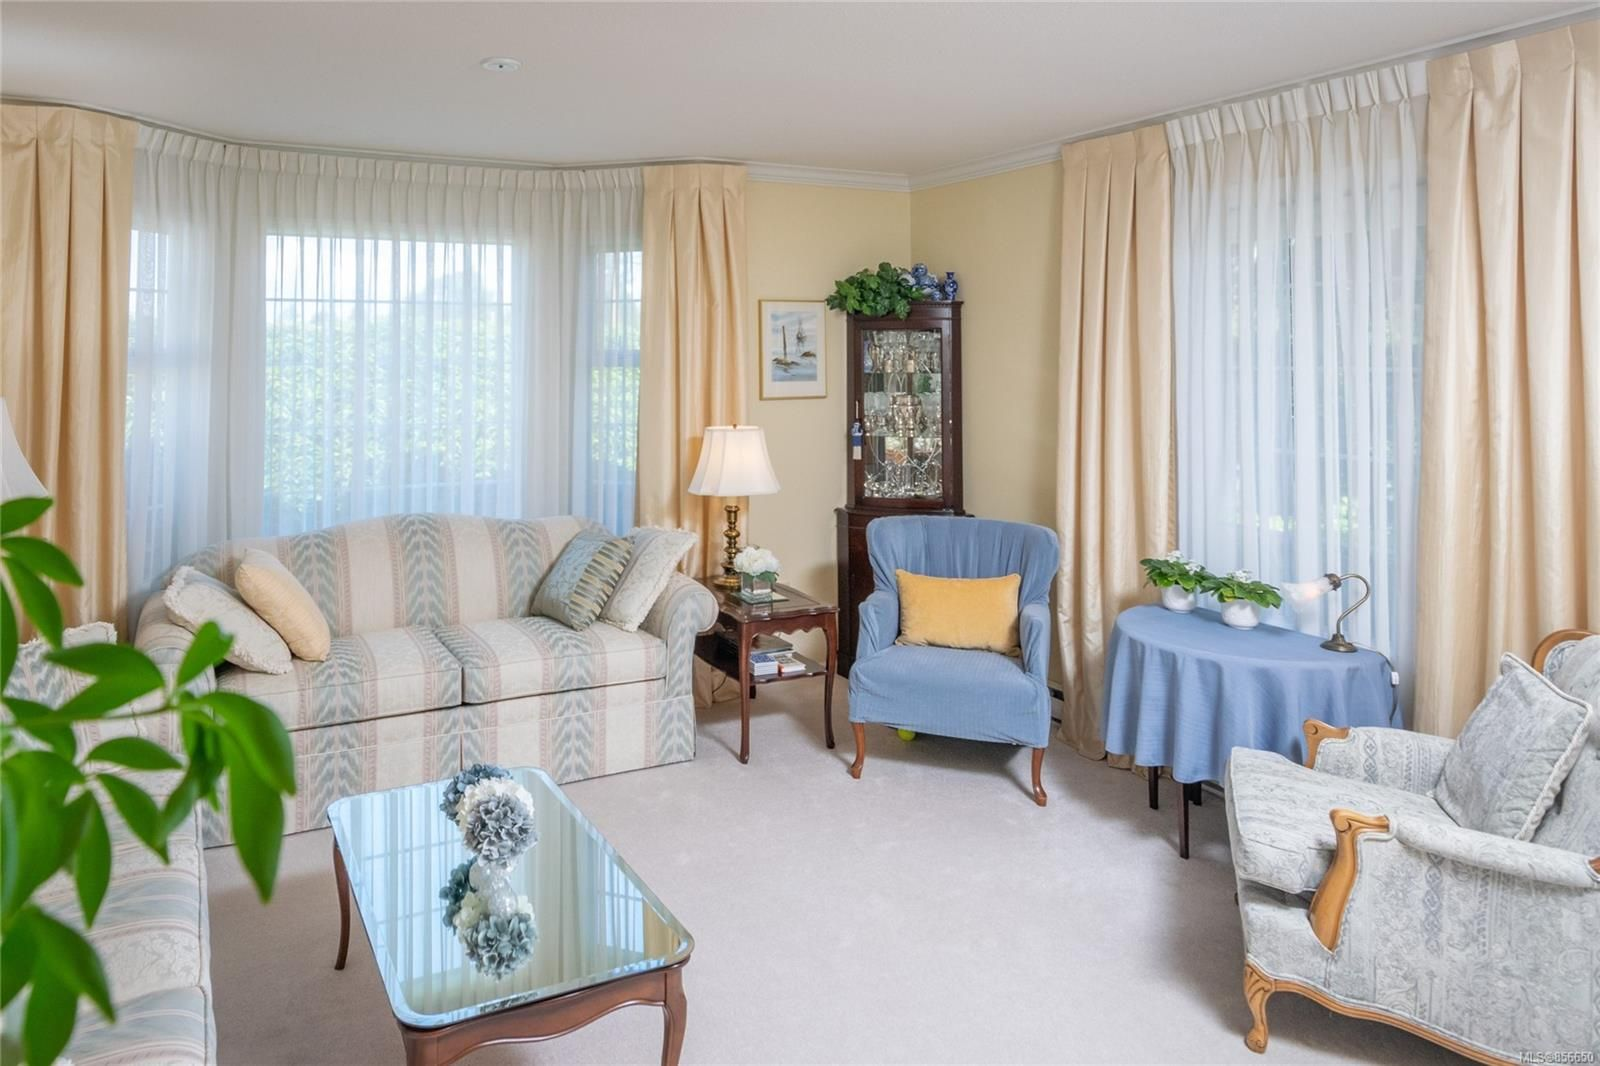 Photo 13: Photos: 4 305 Blower Rd in : PQ Parksville Row/Townhouse for sale (Parksville/Qualicum)  : MLS®# 856650